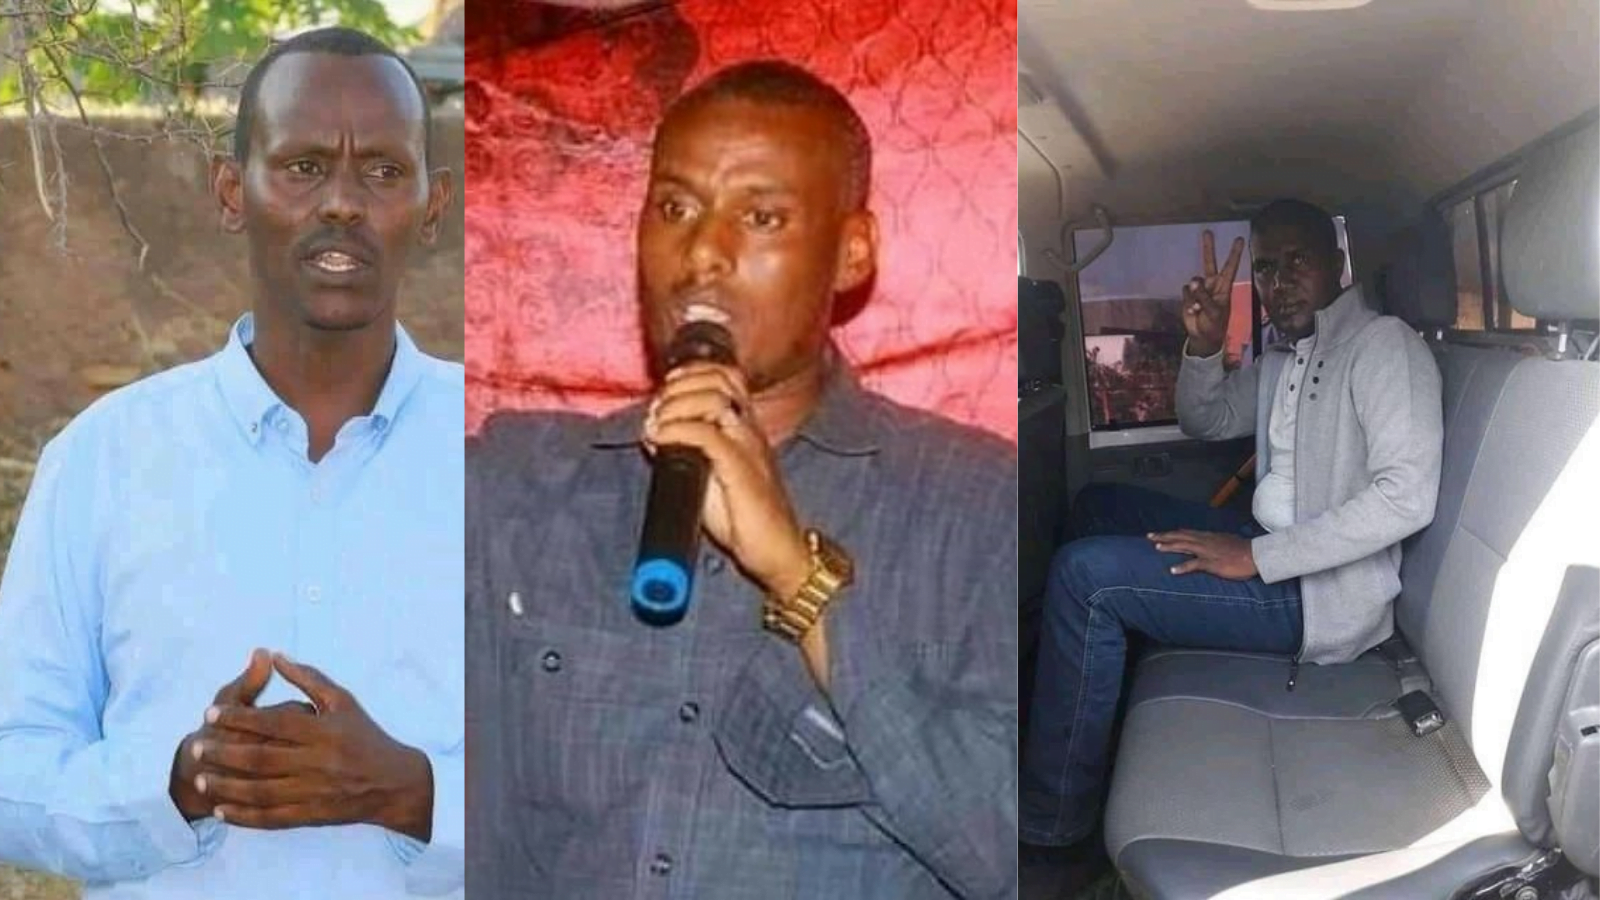 News: Police in Somali region arrest three senior ONLF regional officials, one official served with warrant